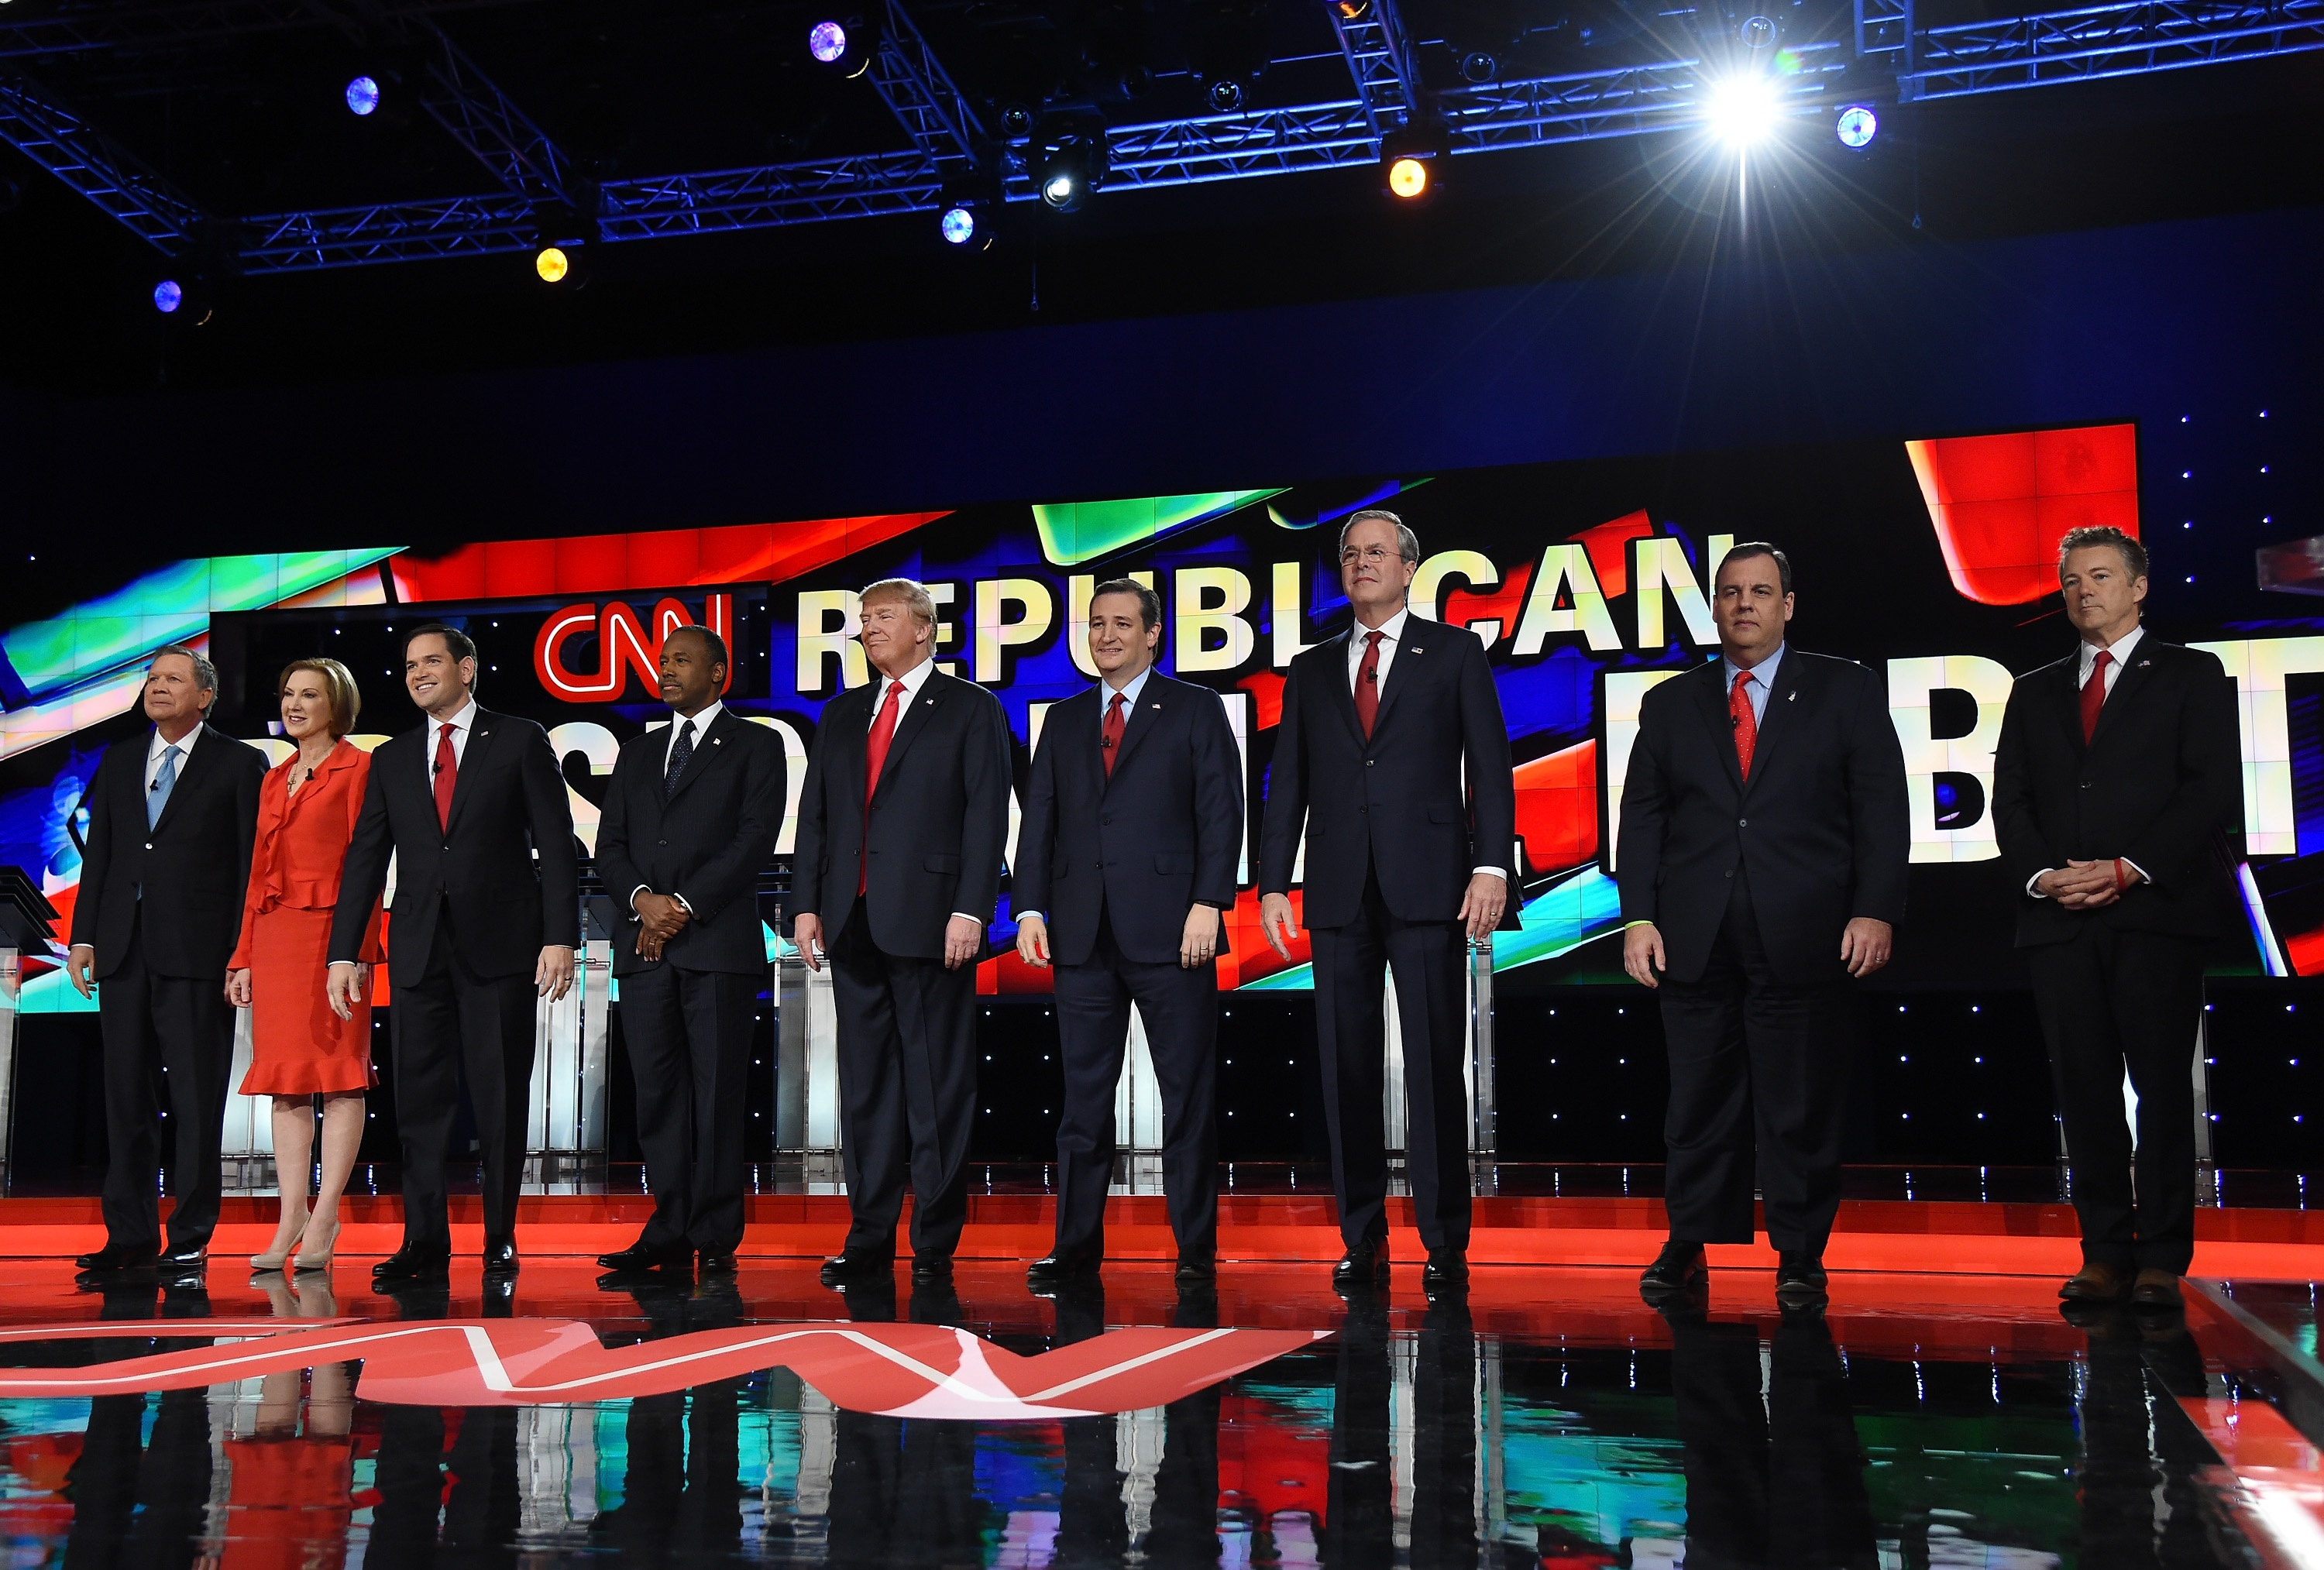 The Republican presidential candidates.